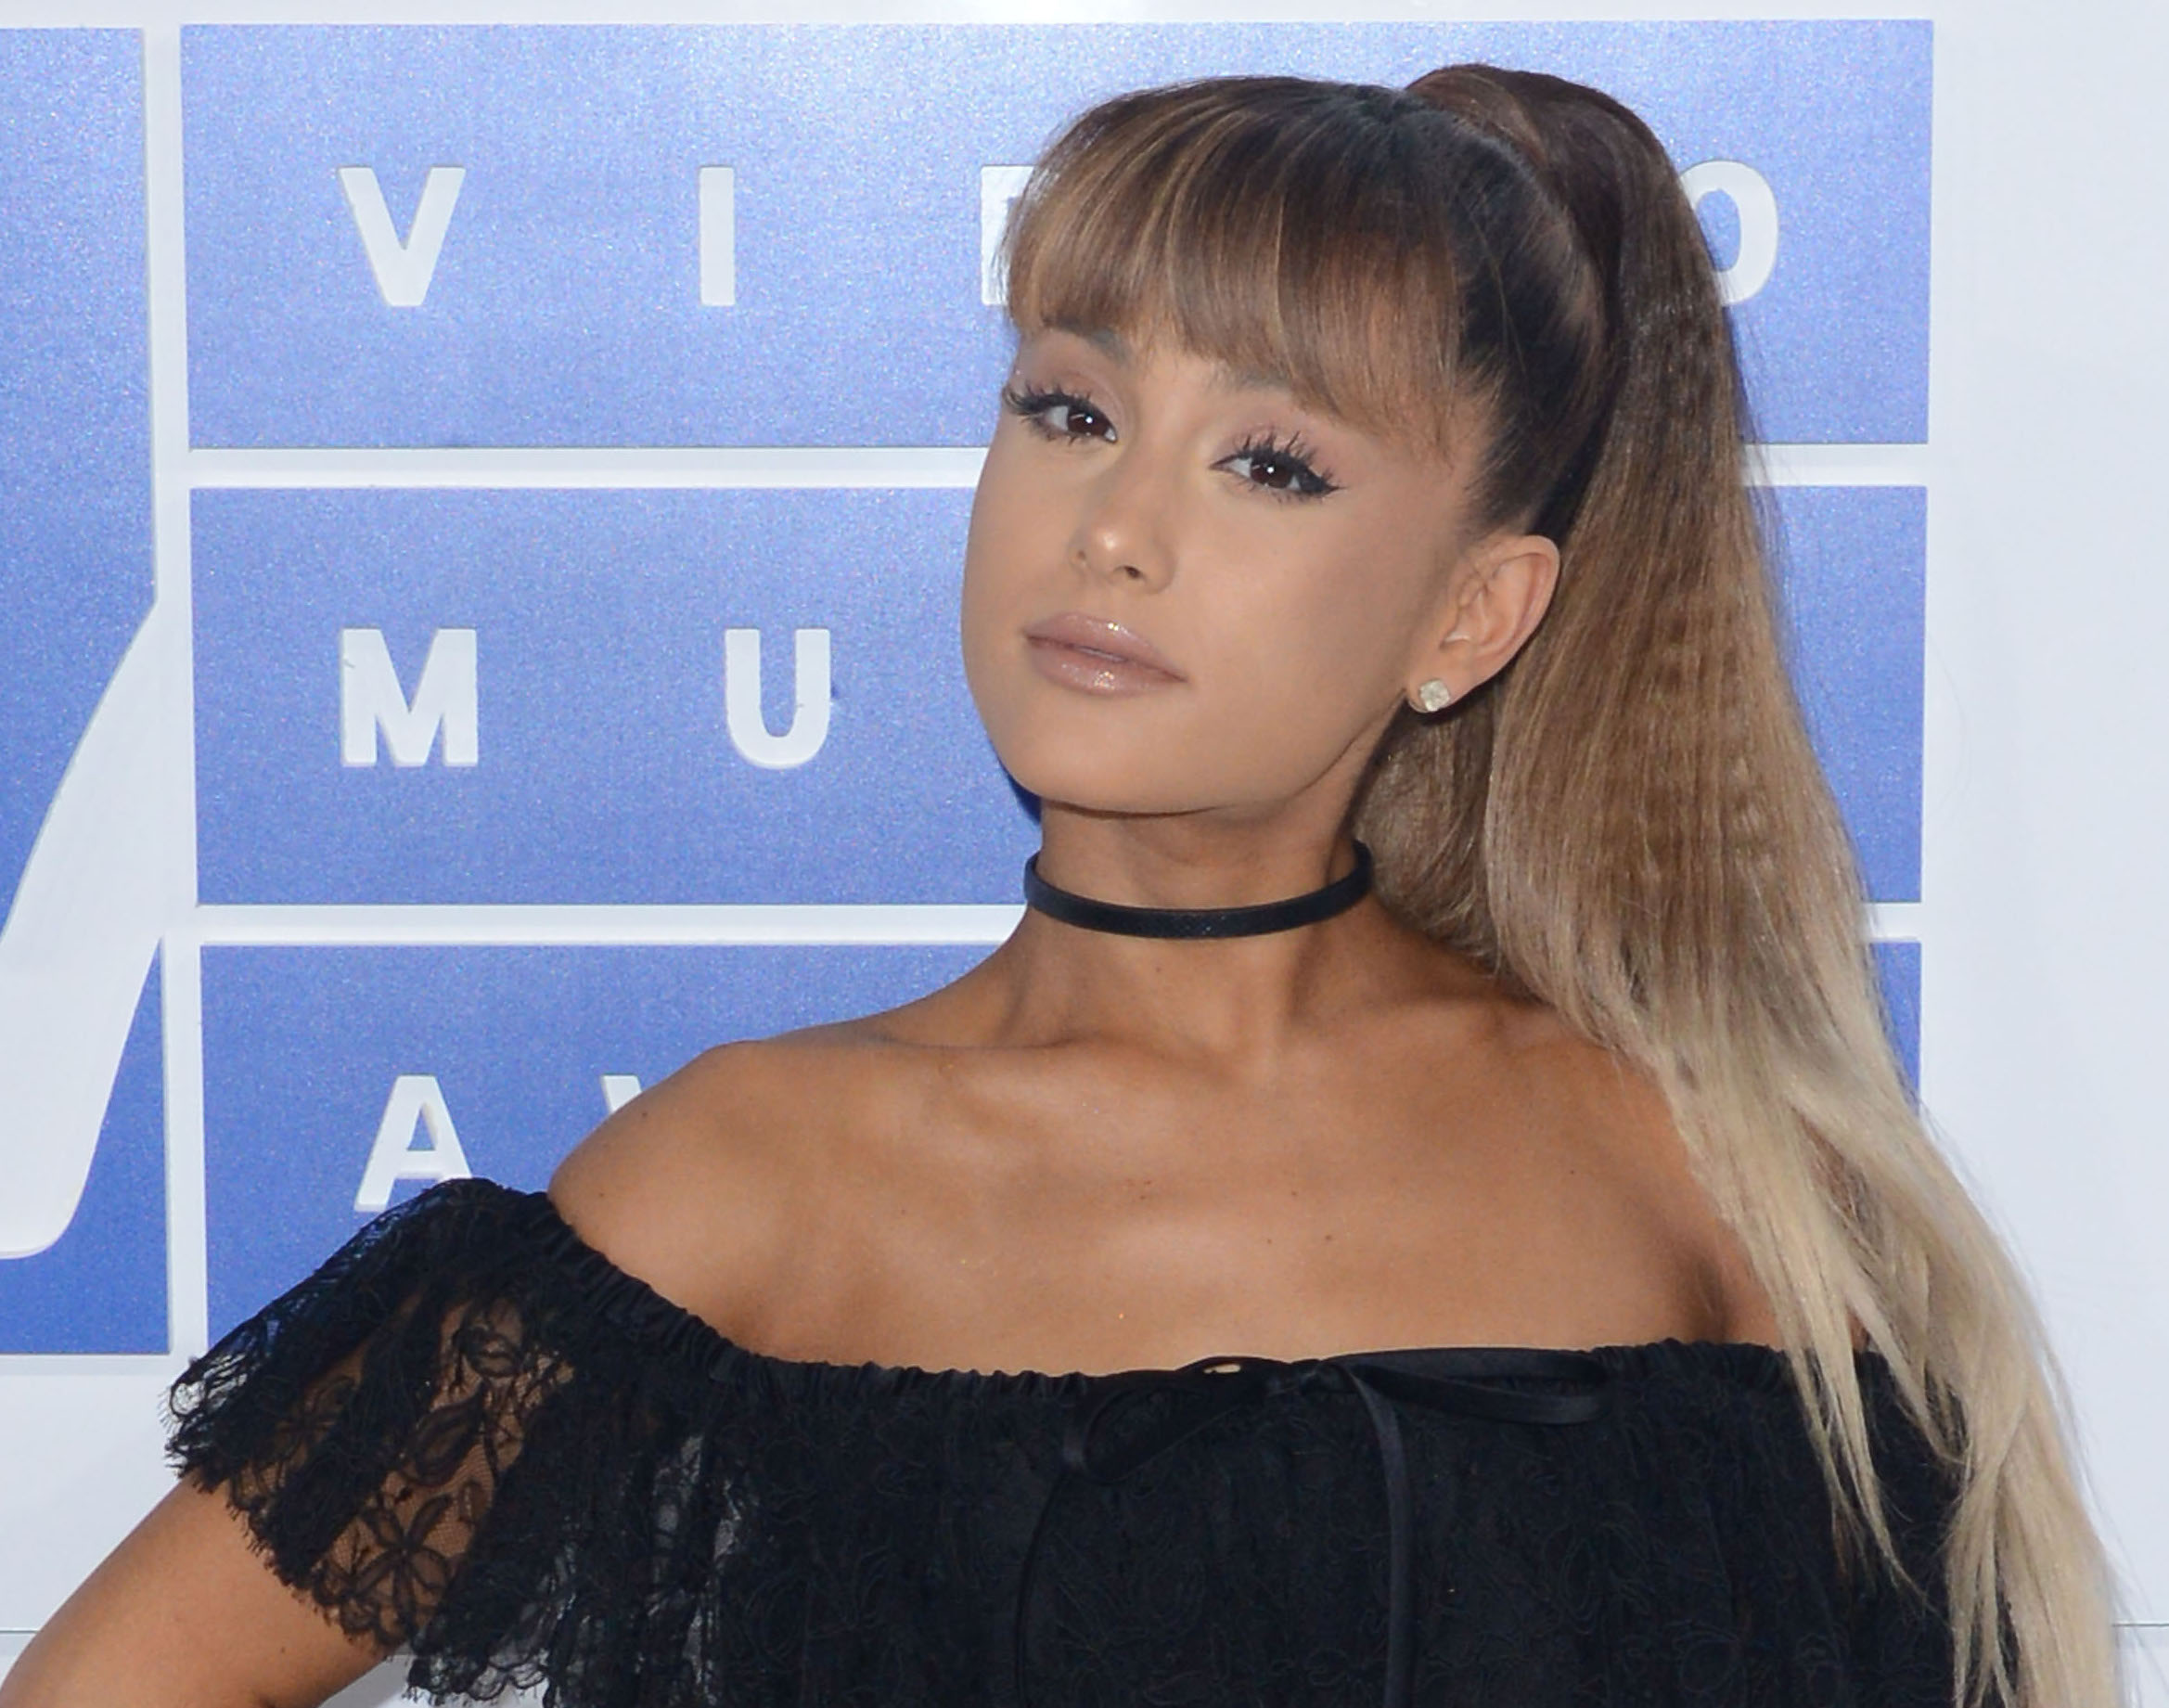 Ariana Grande wears the elementary school overalls of our dreams at this red carpet event